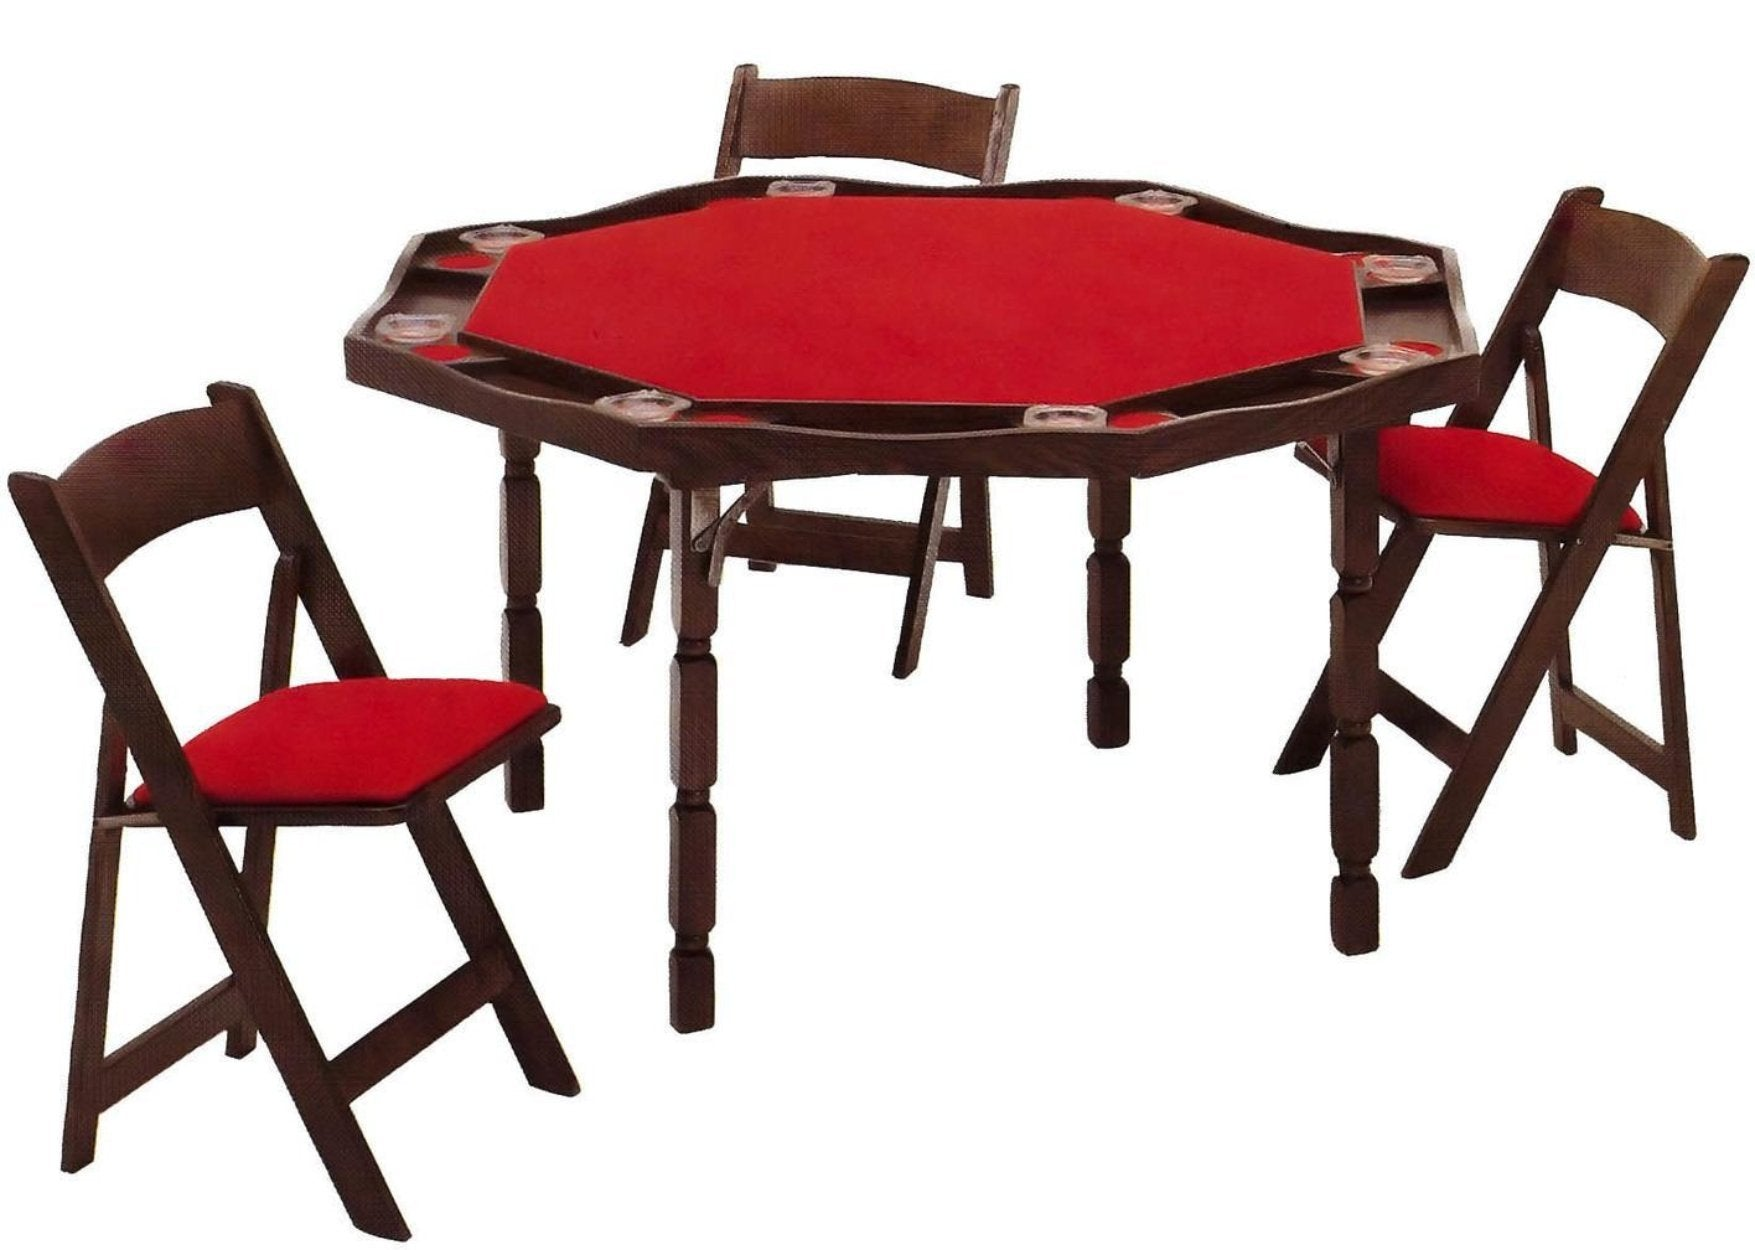 "Maple Period Style Folding Leg Poker Table, in 57"", by Kestell M-85"